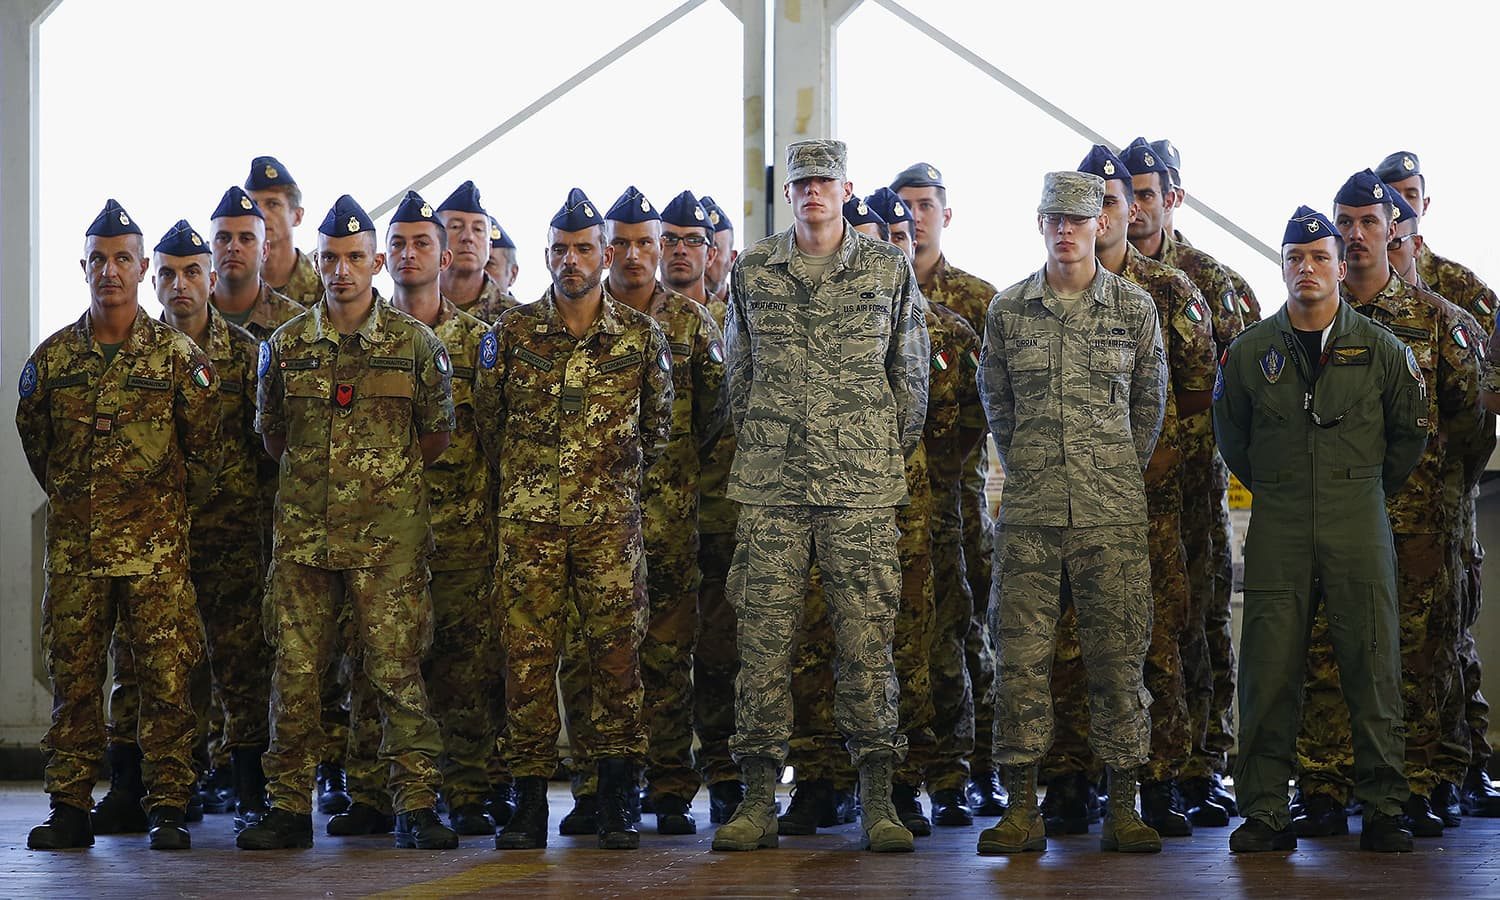 Nato soldiers attend a Nato military exercise at Birgi Nato airbase in Trapani, Italy. — Reuters